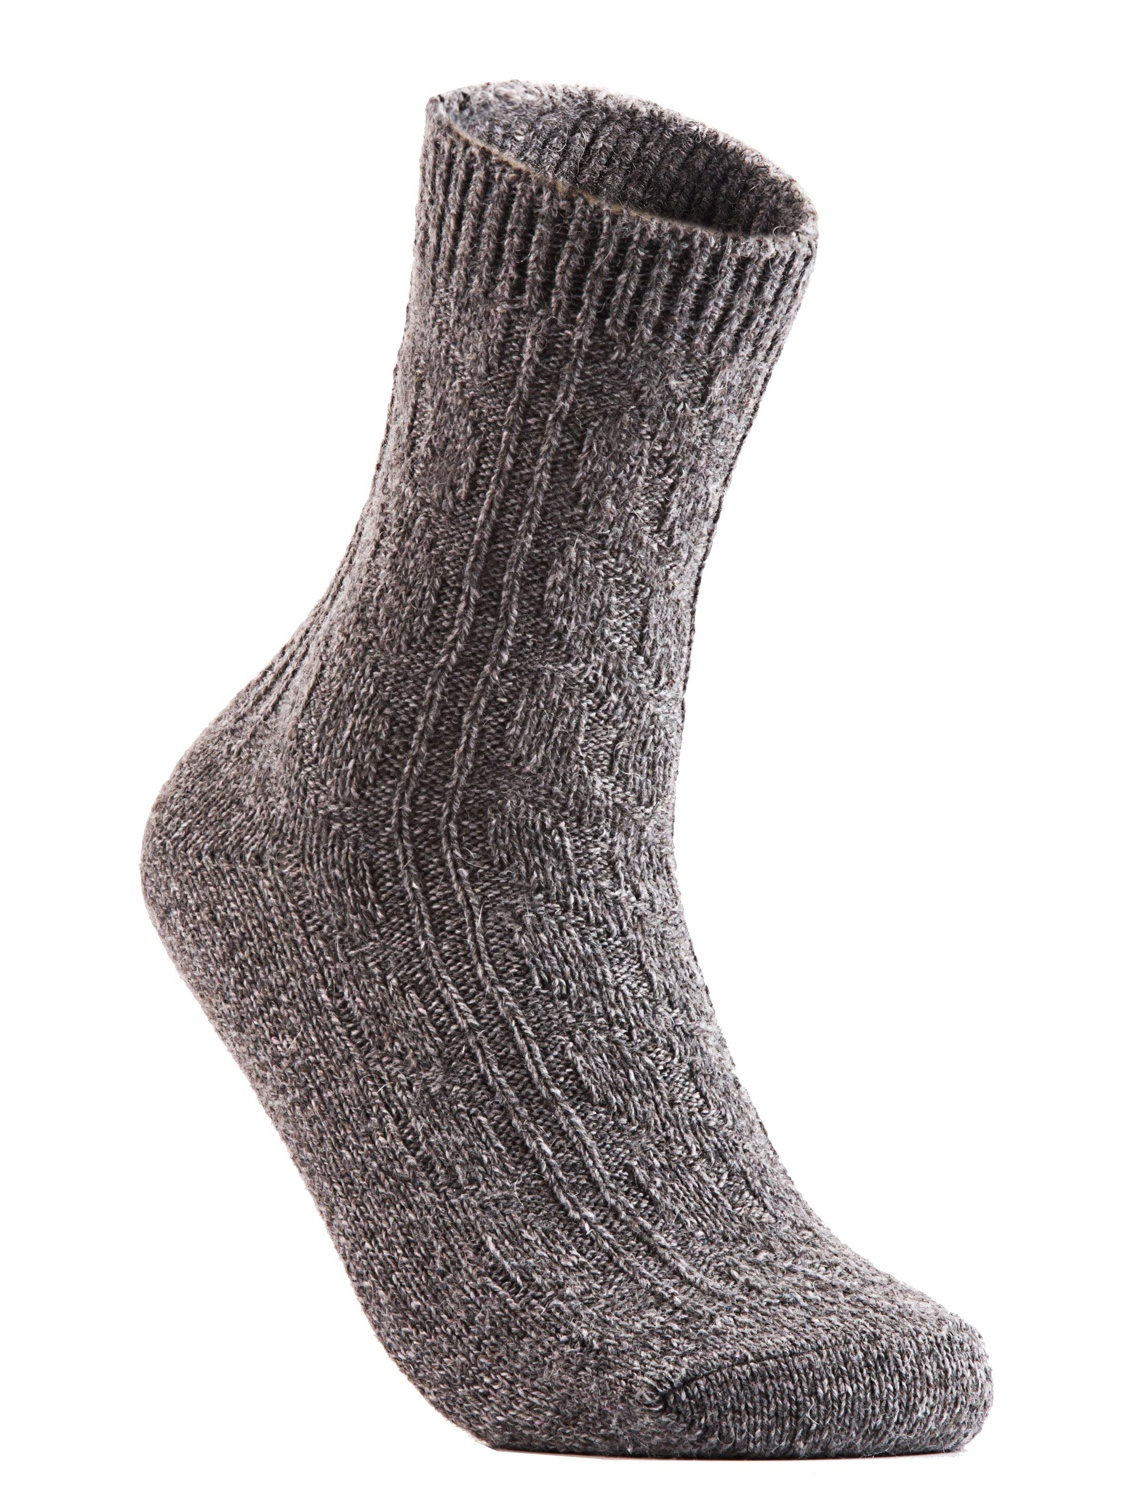 Big Girl's Women's 6 Pairs Pack Fashion Soft Wool Crew Socks One Size AHR1613(Tan)